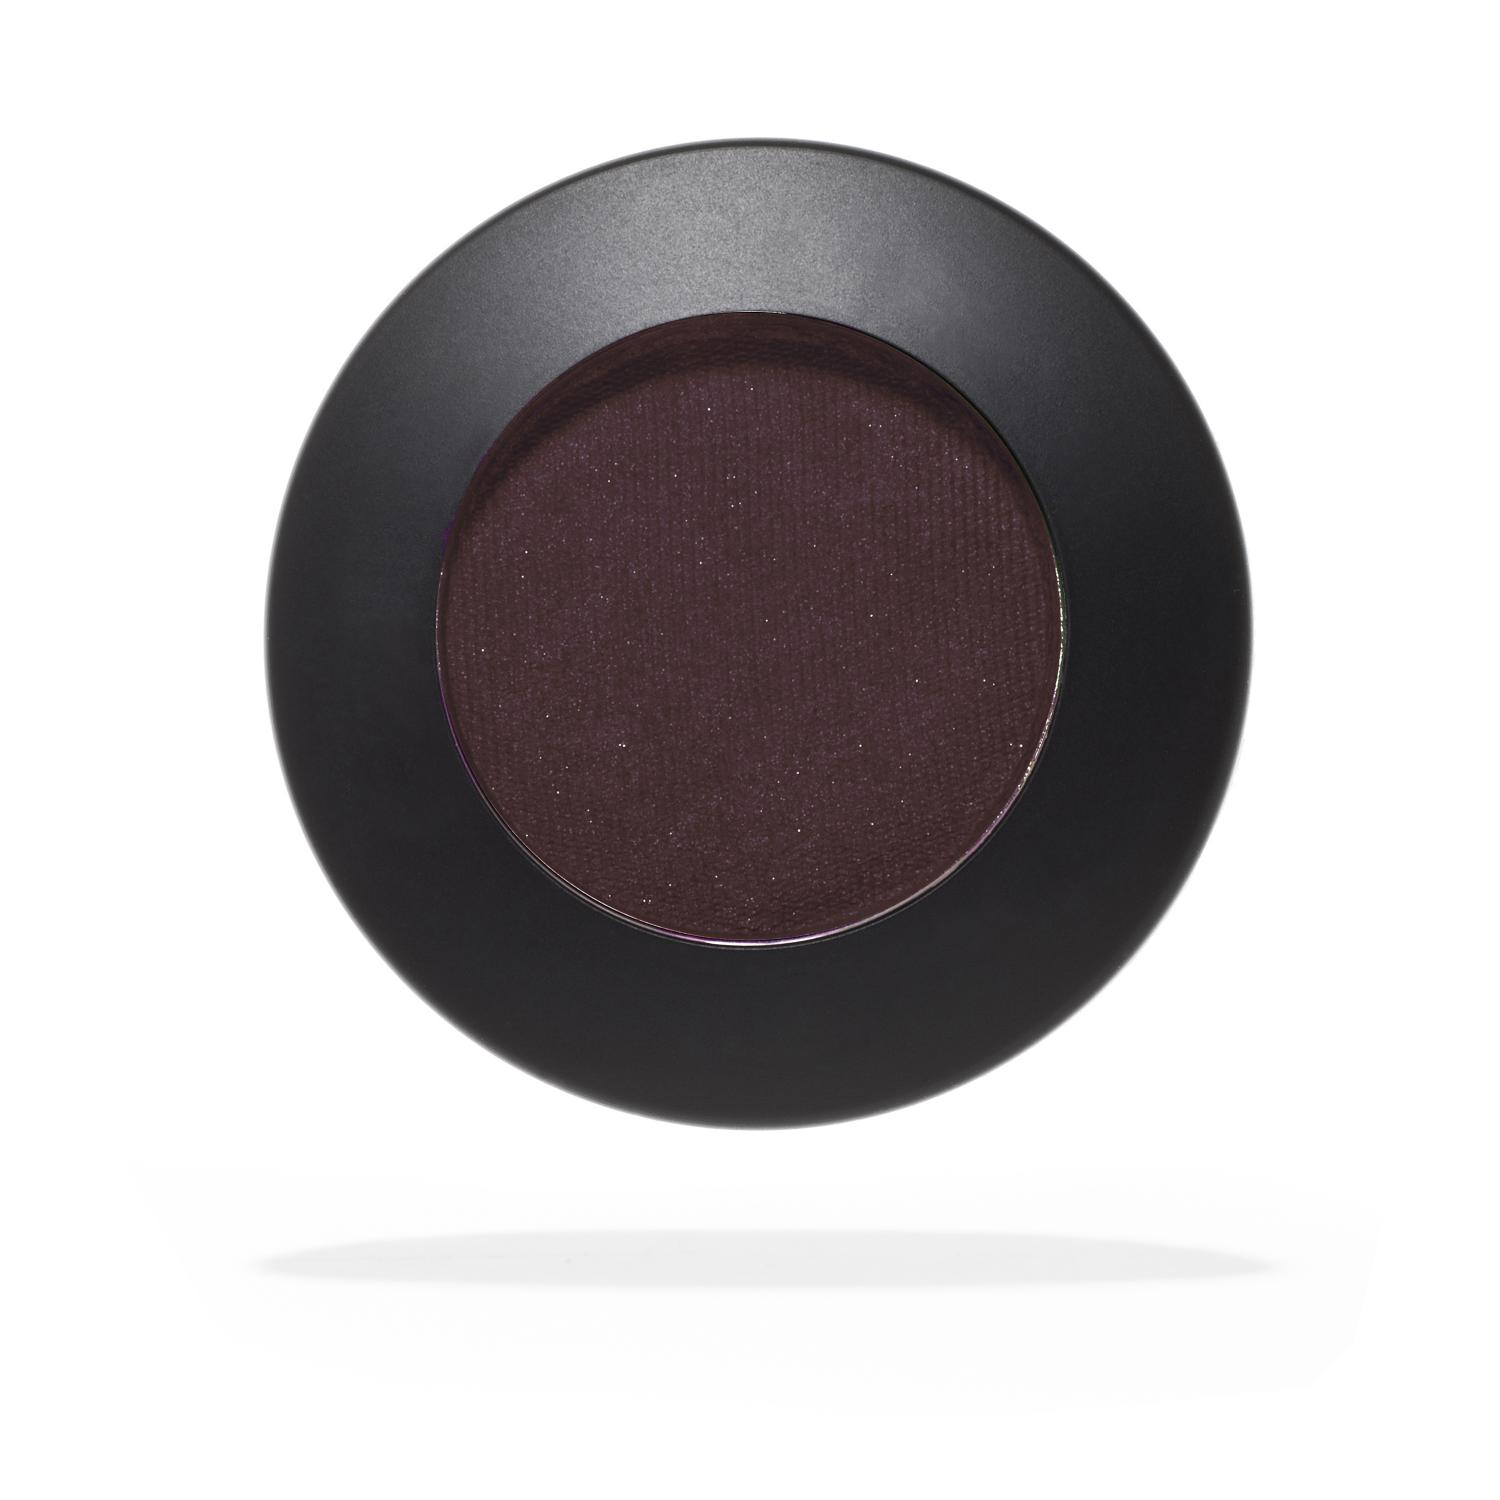 RICI - MICRONIZED EYE SHADOW